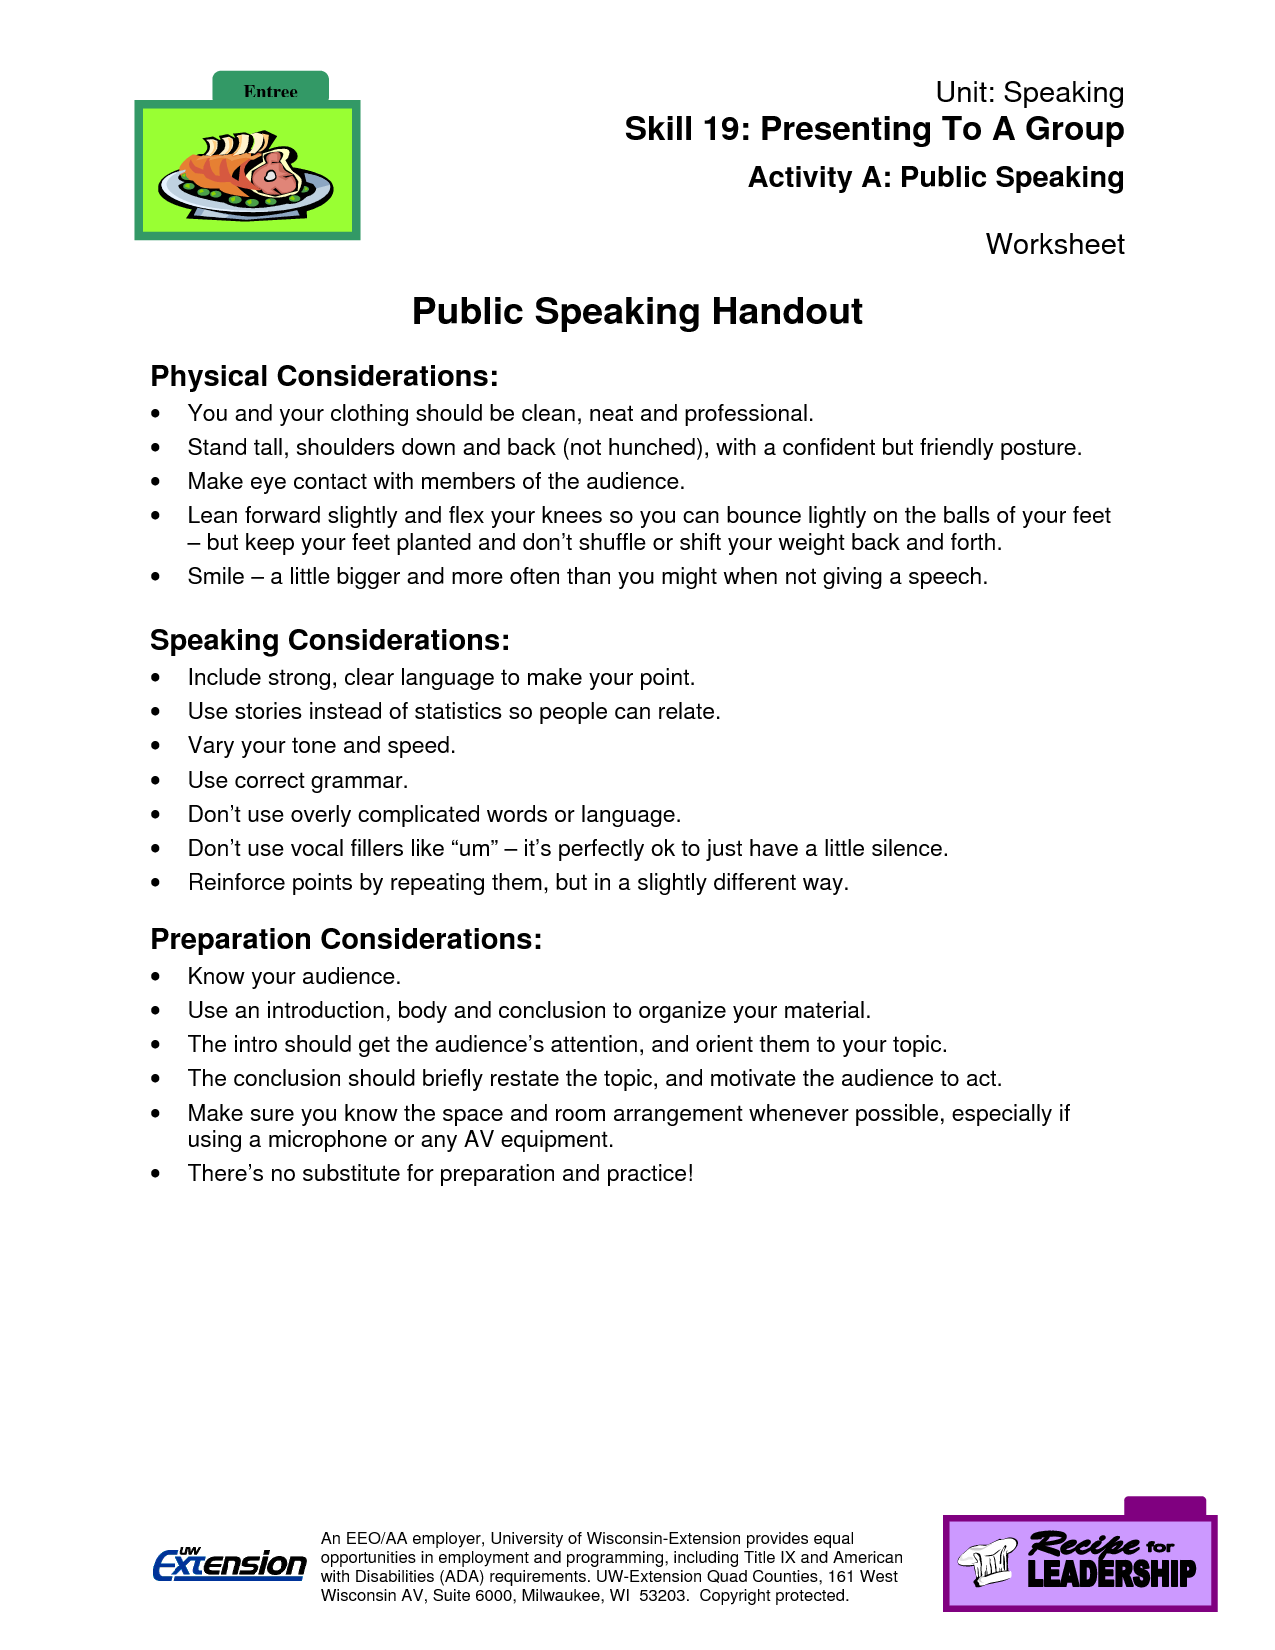 printables public speaking worksheets happywheelsfreak thousands of printable activities. Black Bedroom Furniture Sets. Home Design Ideas